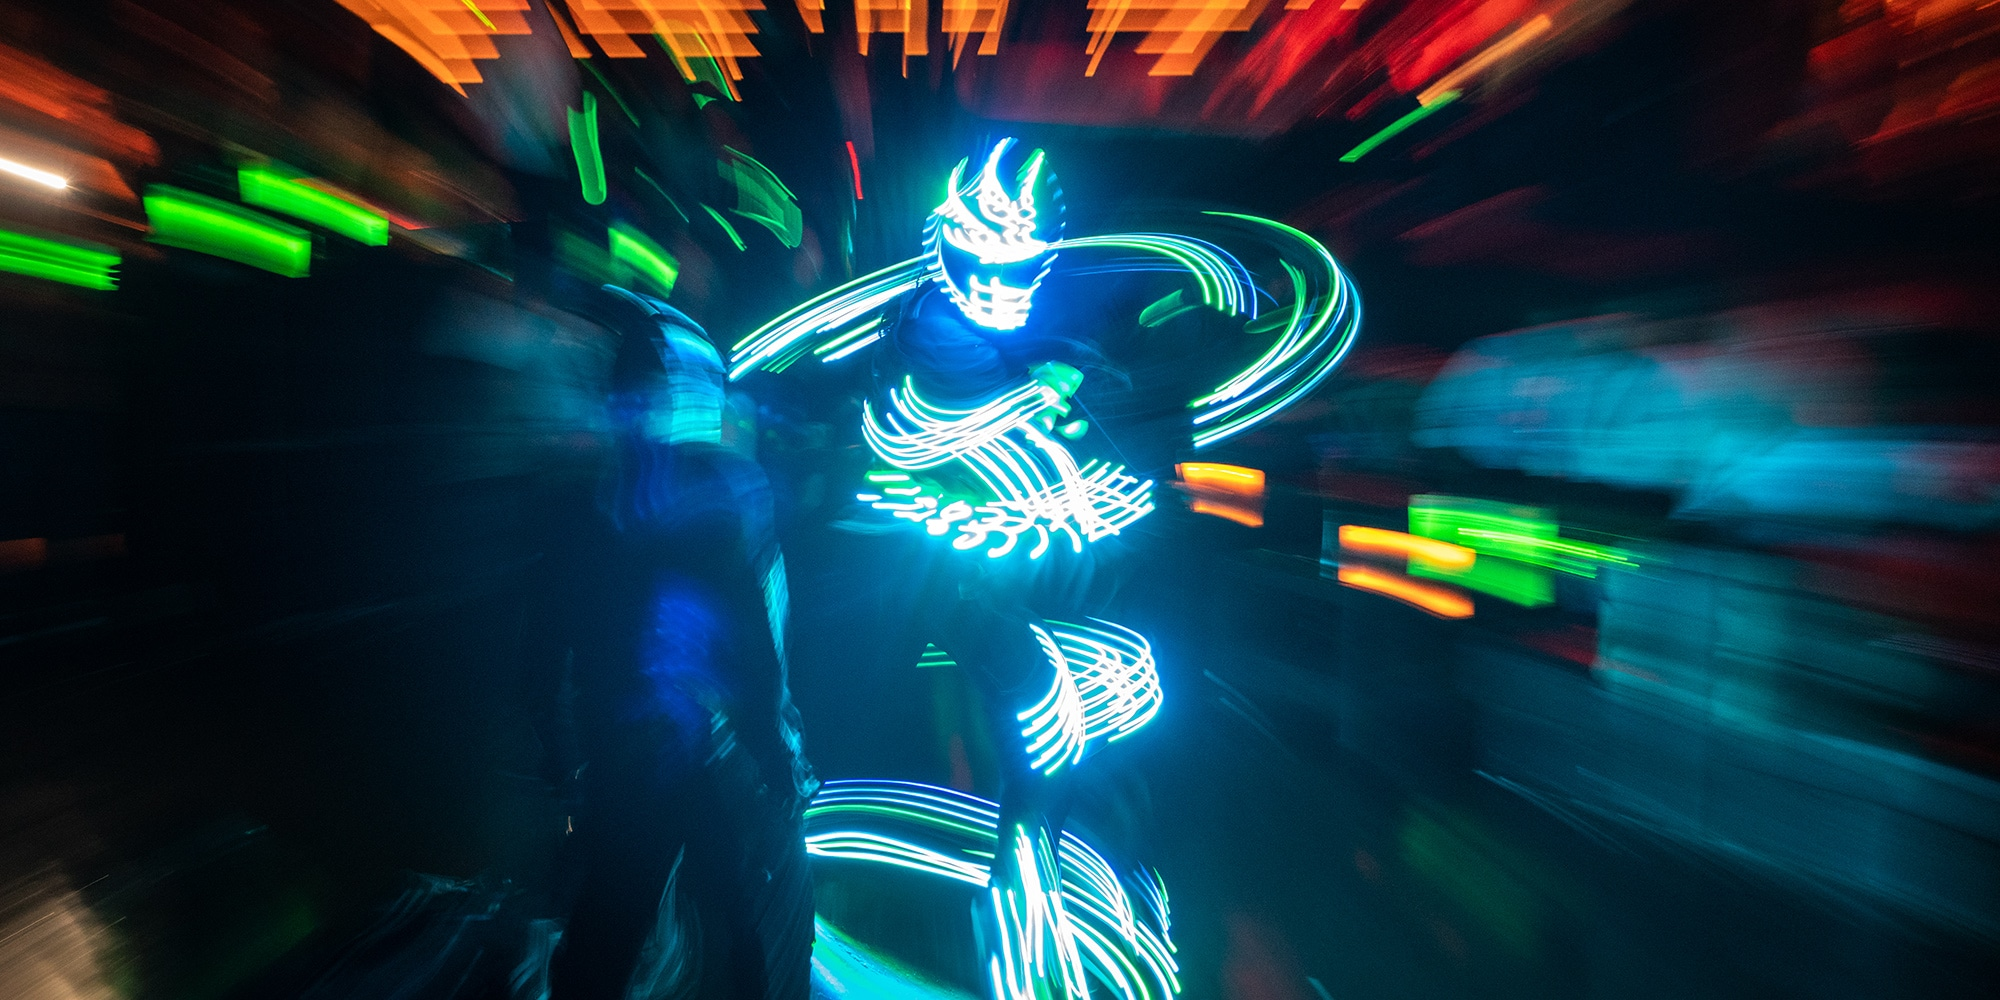 Special performance by Iluminate – they lit up the night with an incredible dance performance